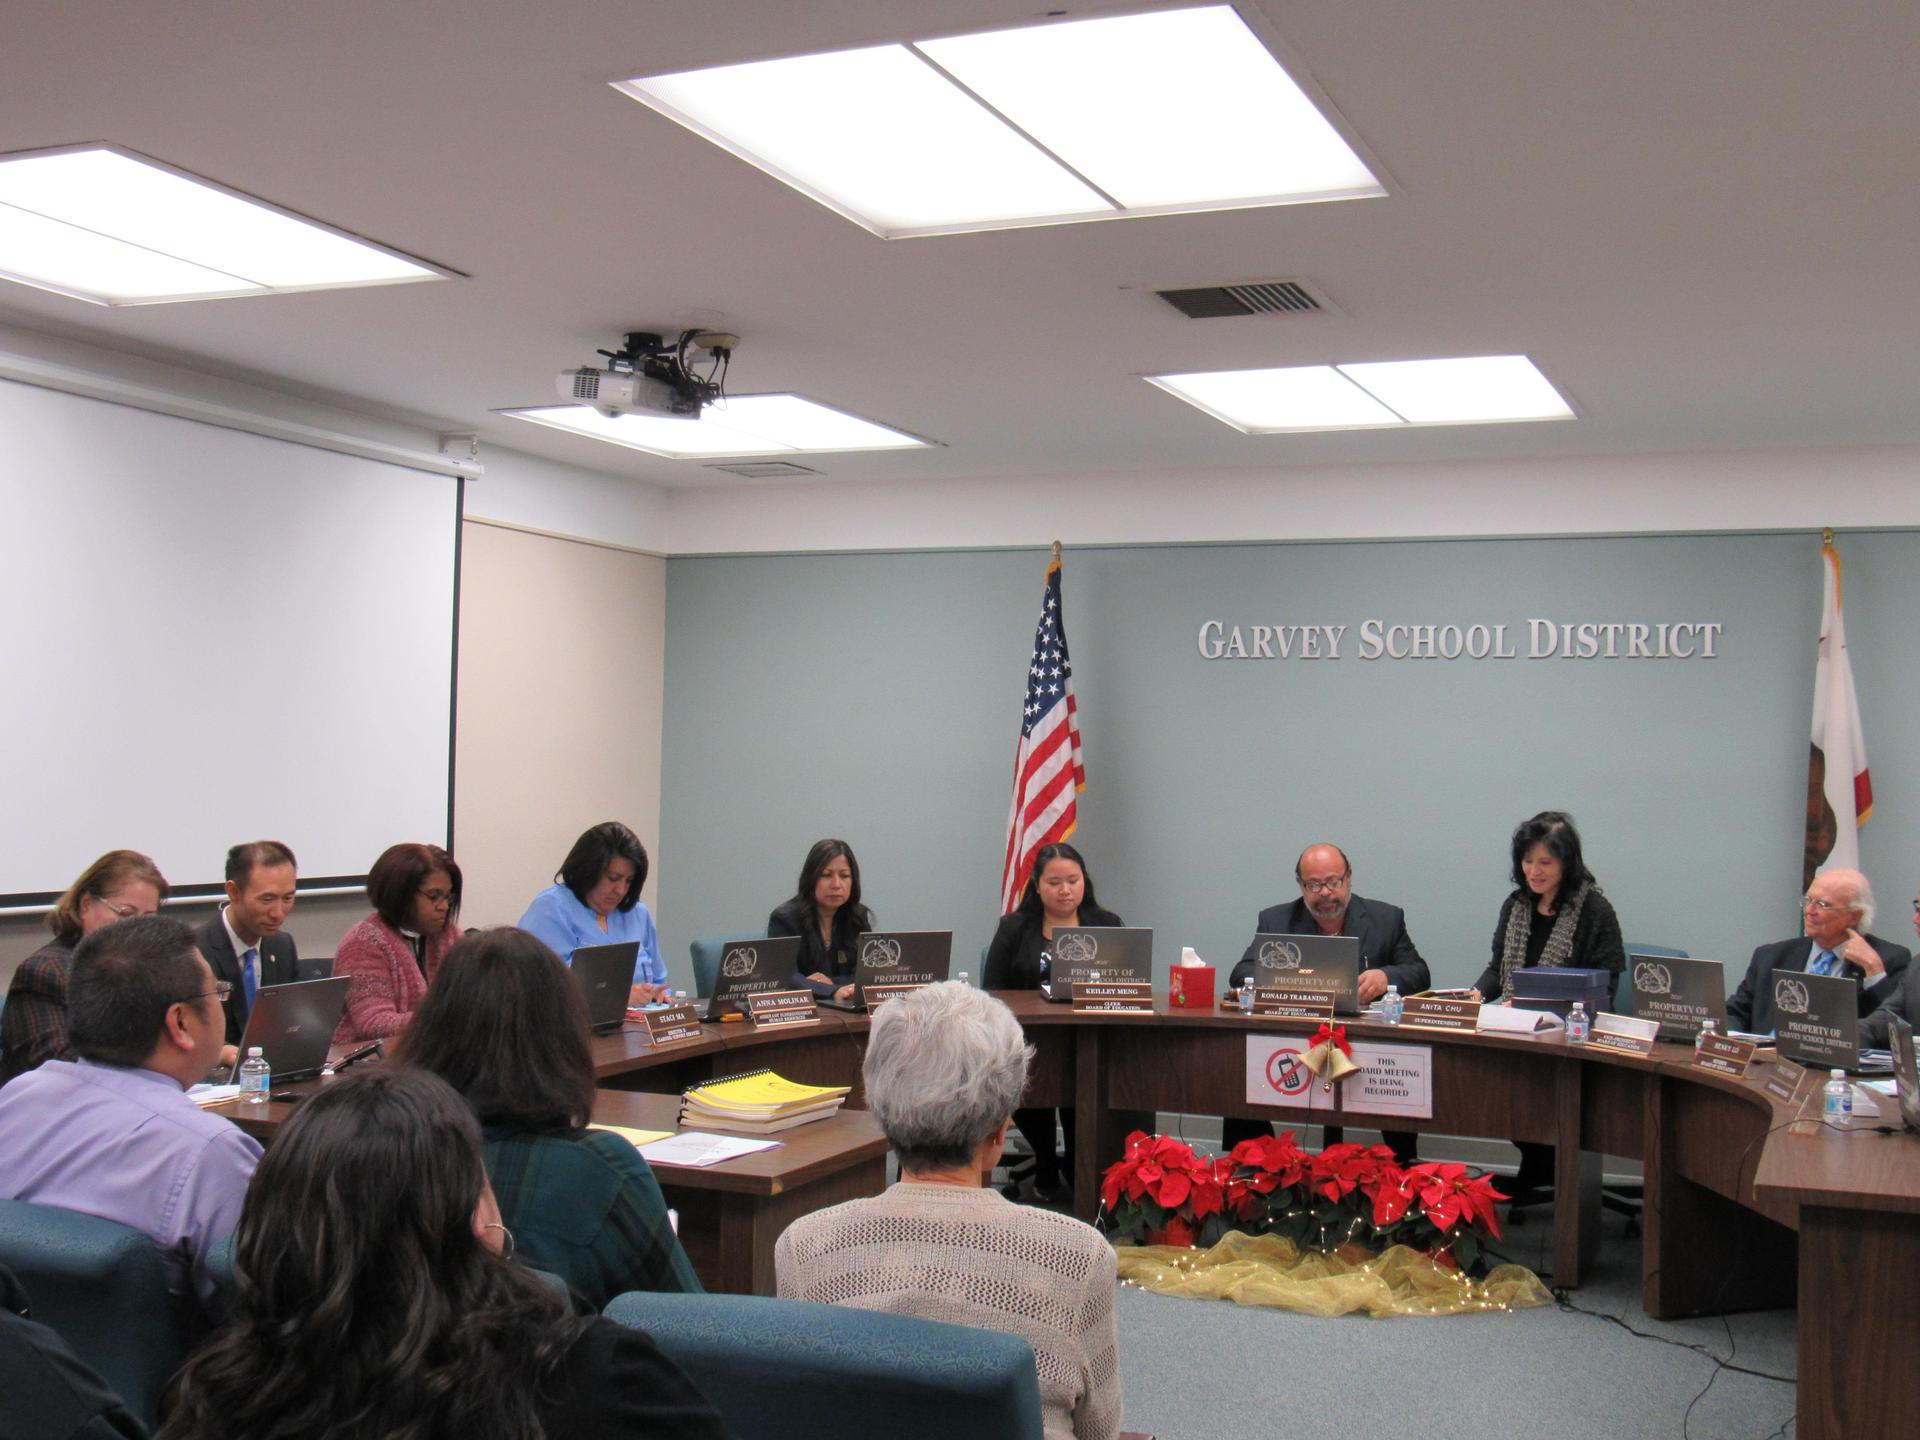 Garvey School District Board Meeting